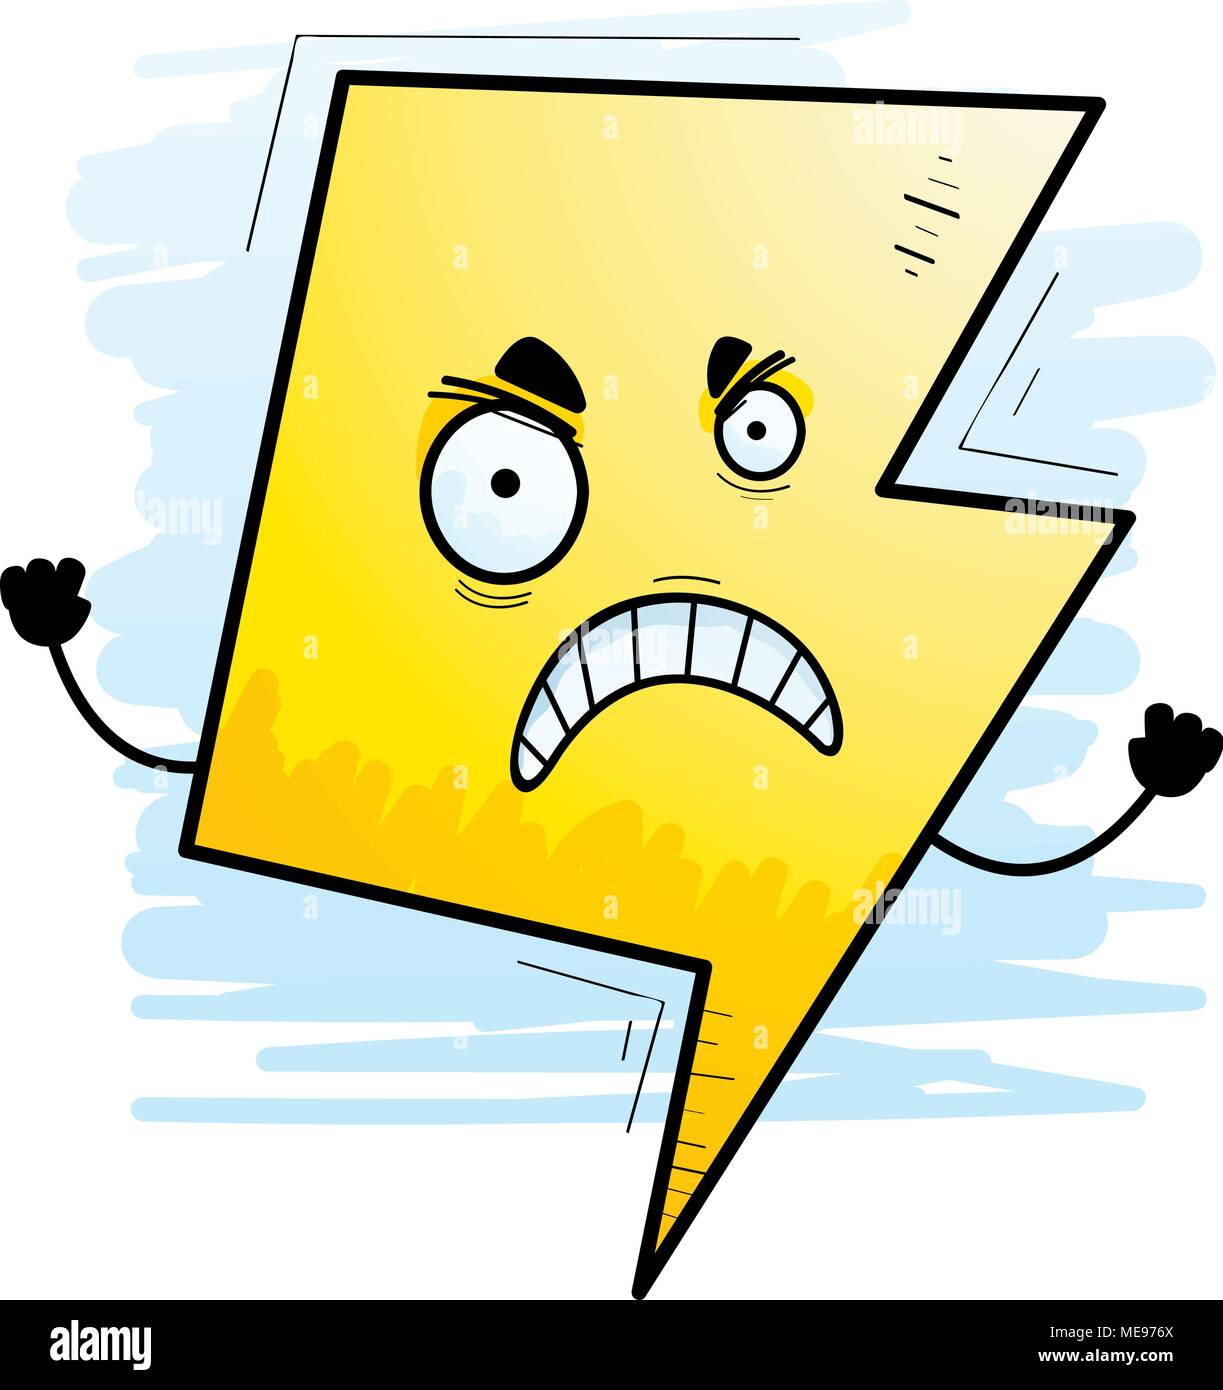 a cartoon illustration of a lightning bolt looking angry stock